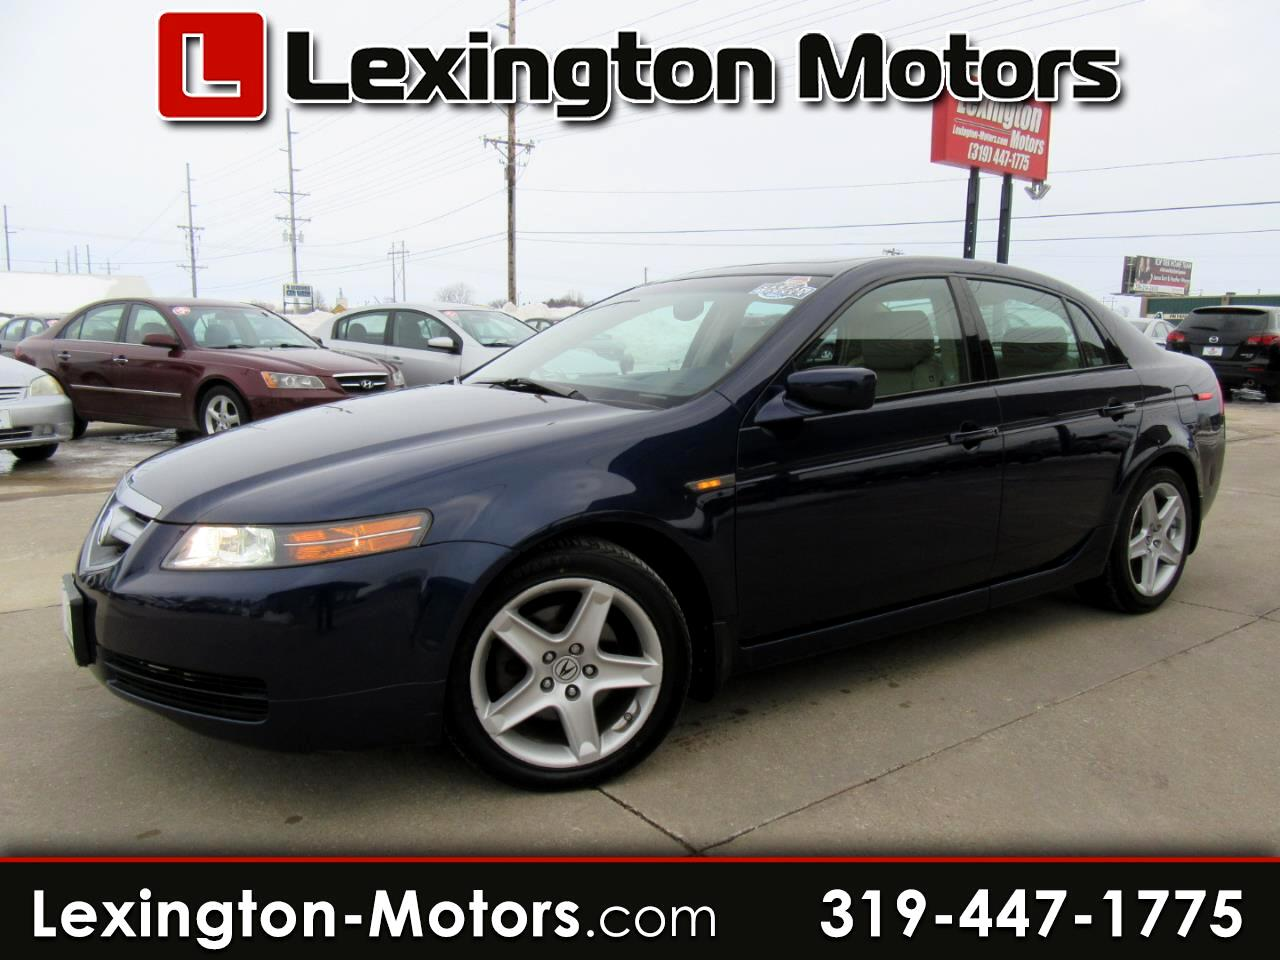 2006 Acura TL 4dr Sdn 3.2L w/Navigation System